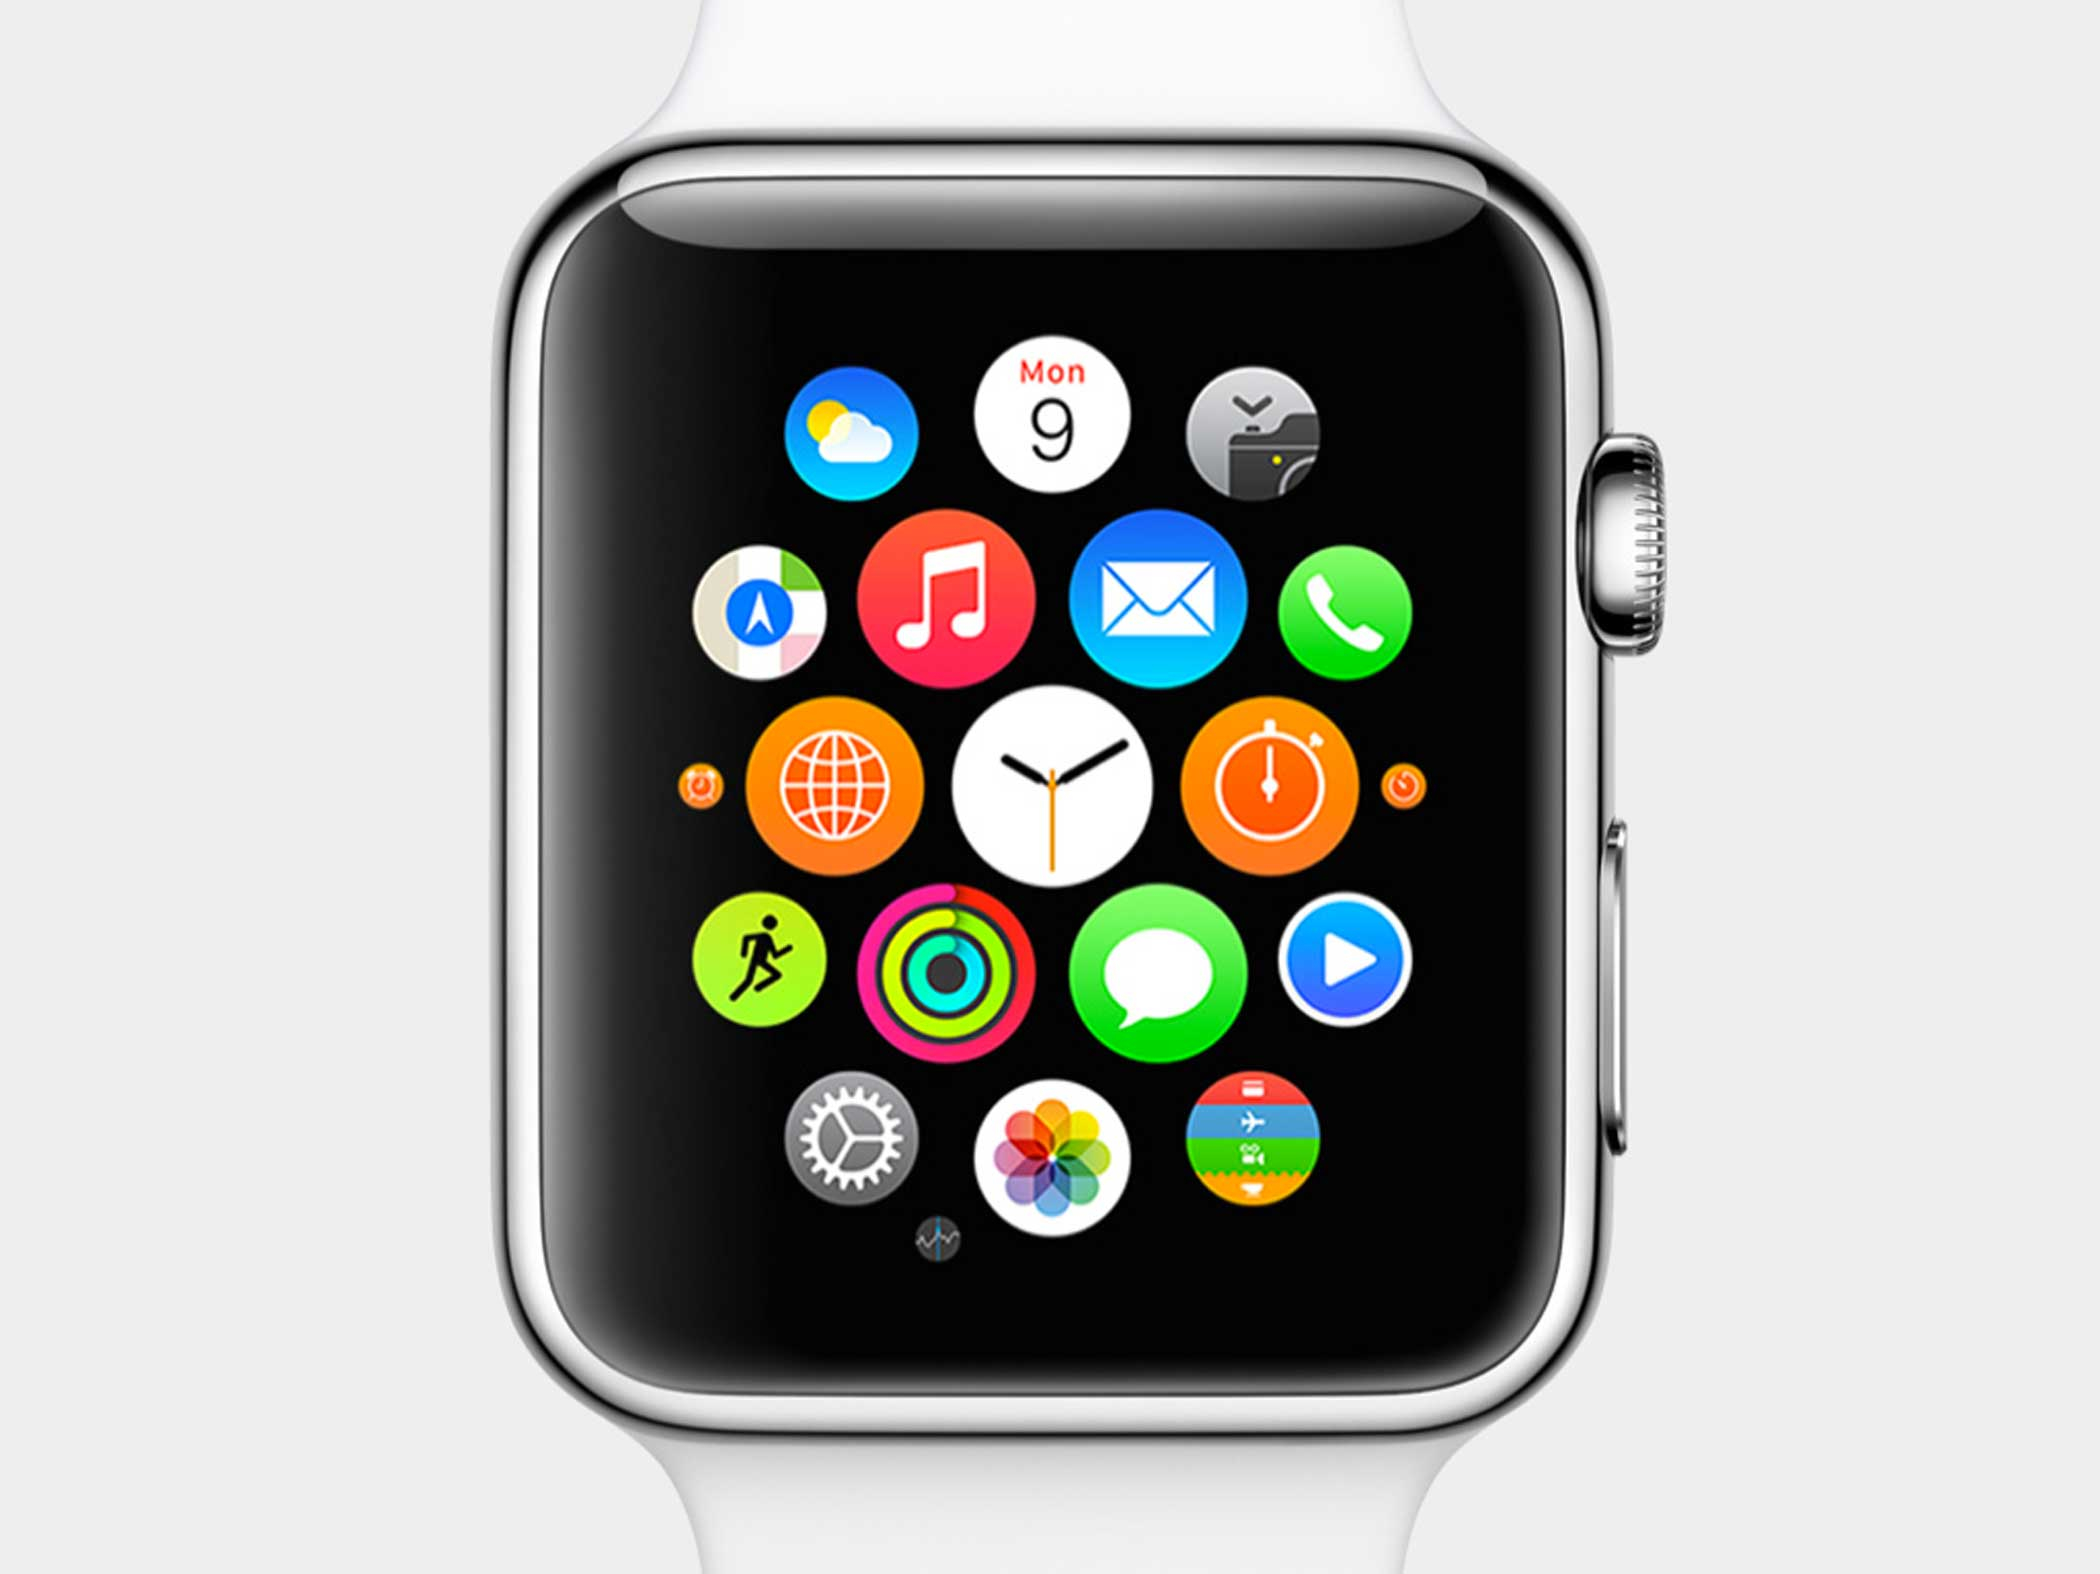 In addition to timekeeping, communications, and health and fitness, Apple Watch lets you do so much more.